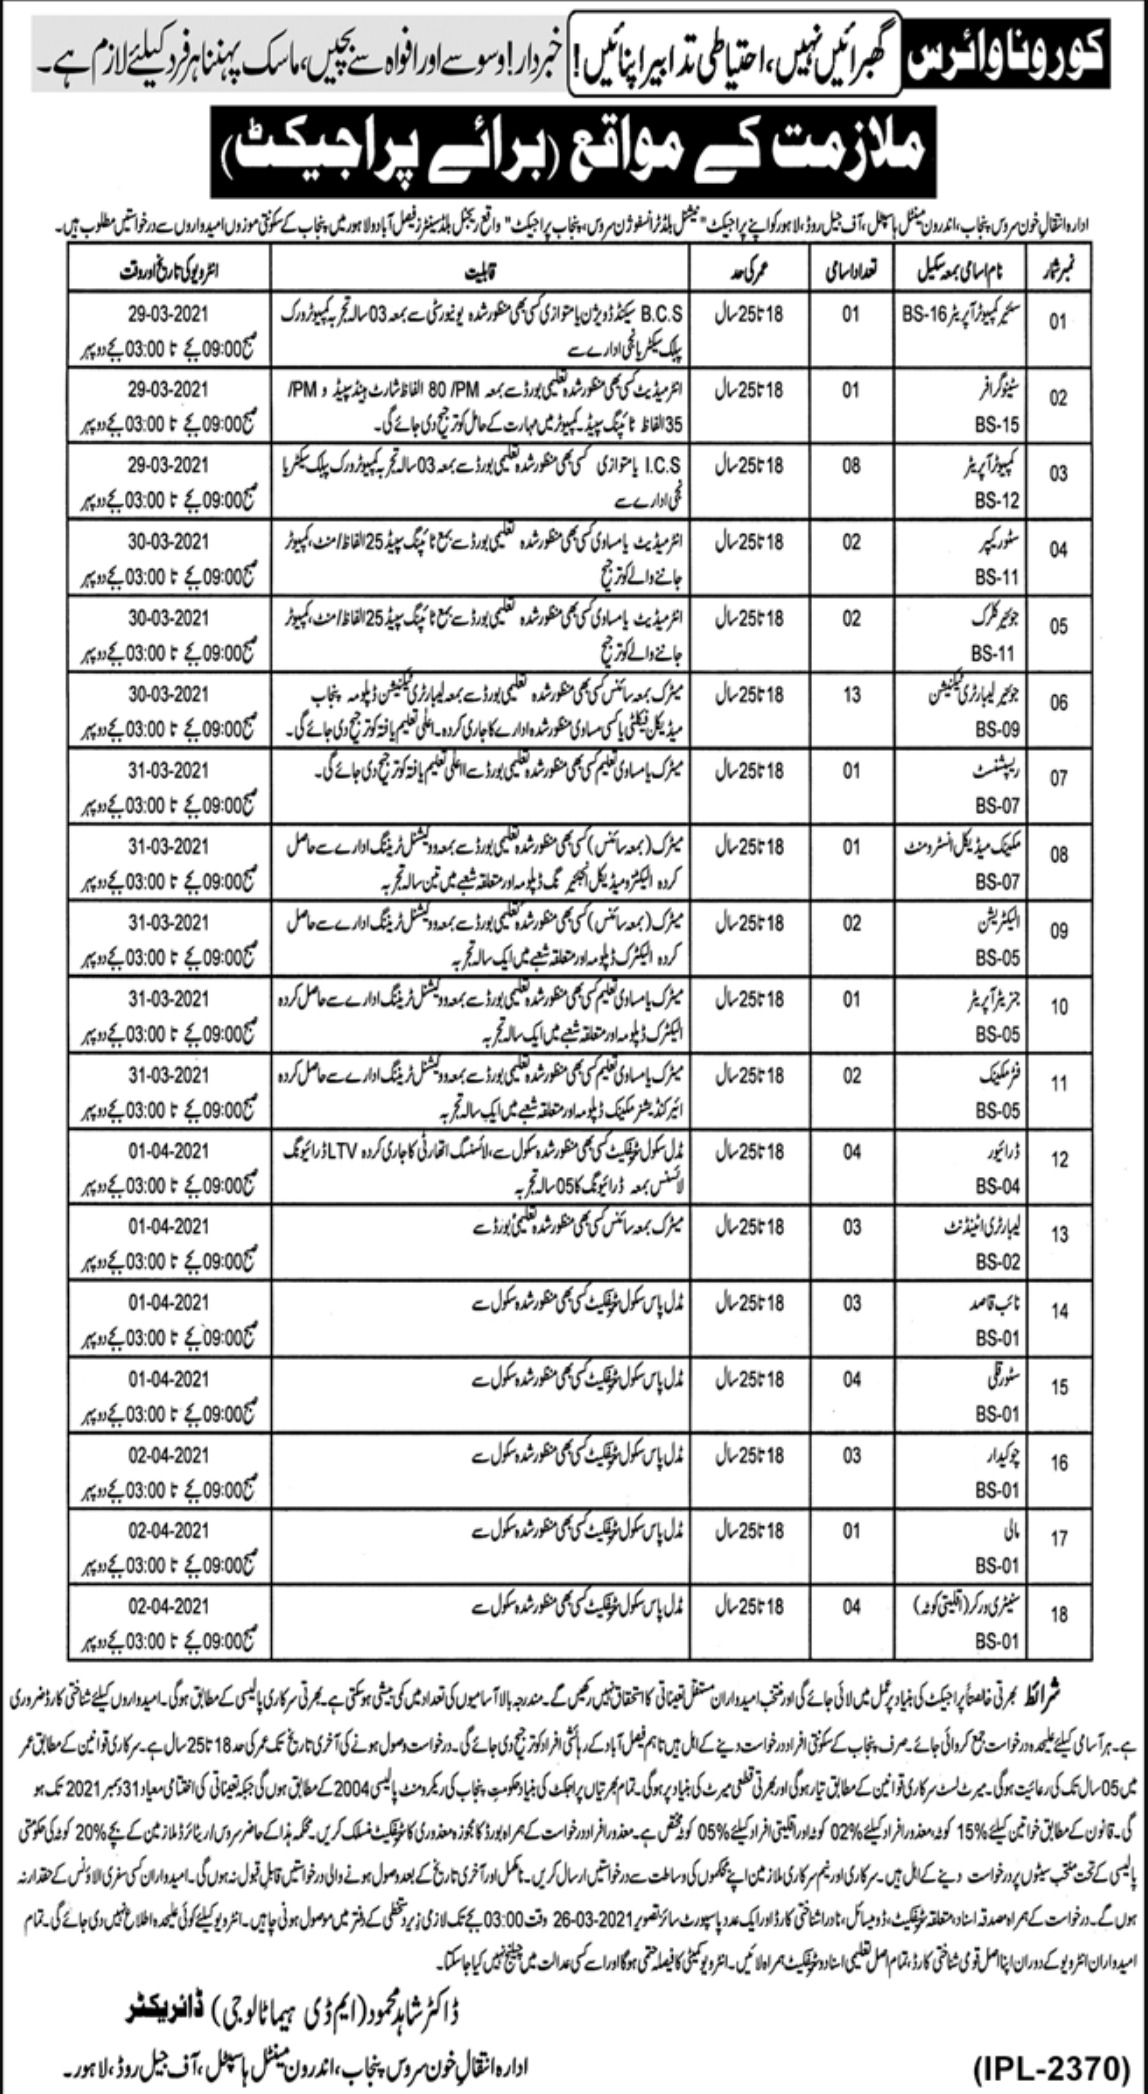 Institute of Blood Transfusion Service Punjab Lahore Jobs March 2021